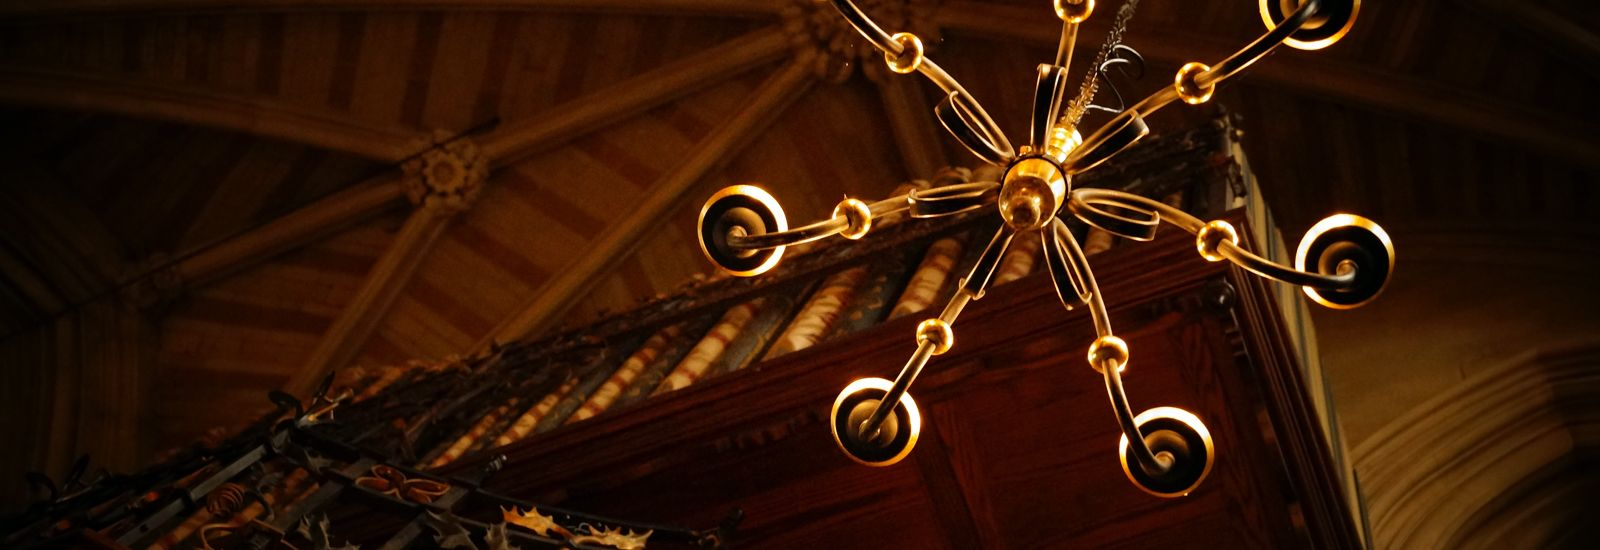 Looking up at a candelabra